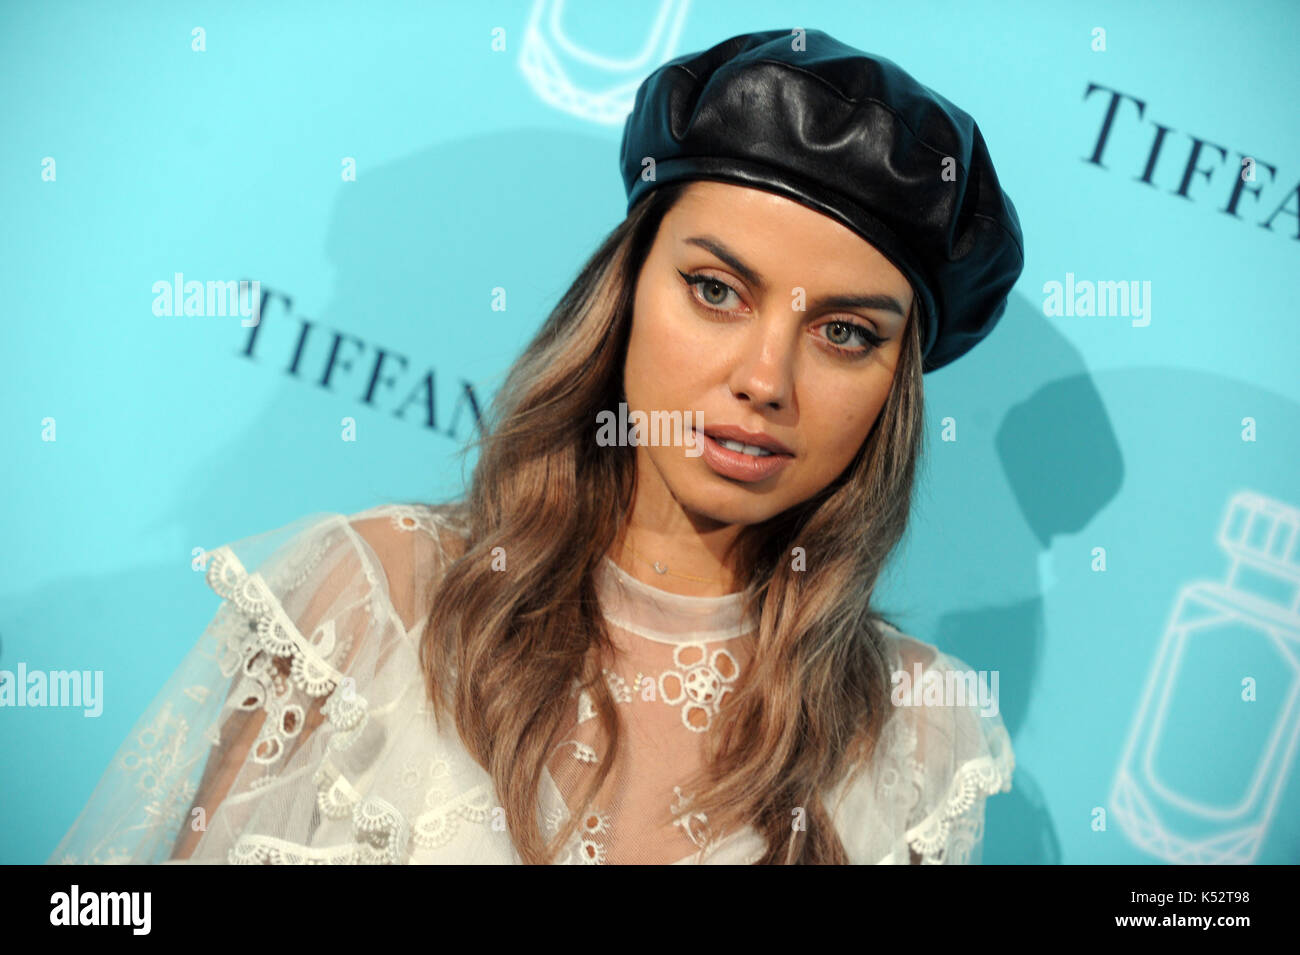 NEW YORK, NY - SEPTEMBER 06: Guest attends the Tiffany & Co. Fragrance launch event on September 6, 2017 in - Stock Image